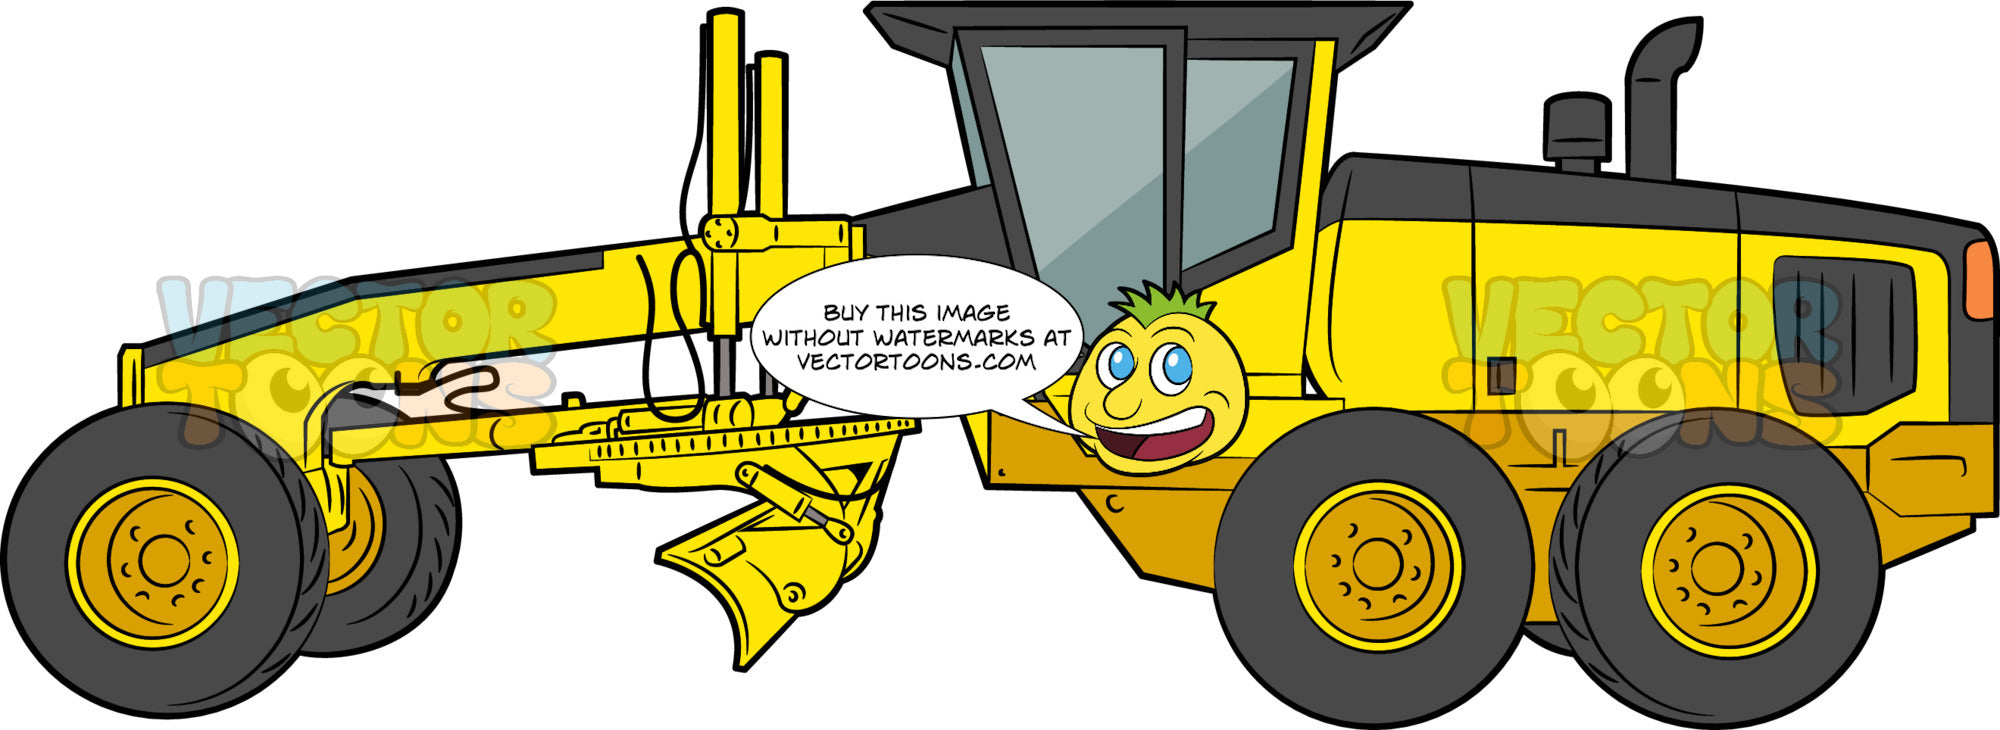 A Motor Grader. A heavy construction vehicle with yellow and black body paint, six wheels and tires, a long blade used to create a flat surface on the pavement during a grading process